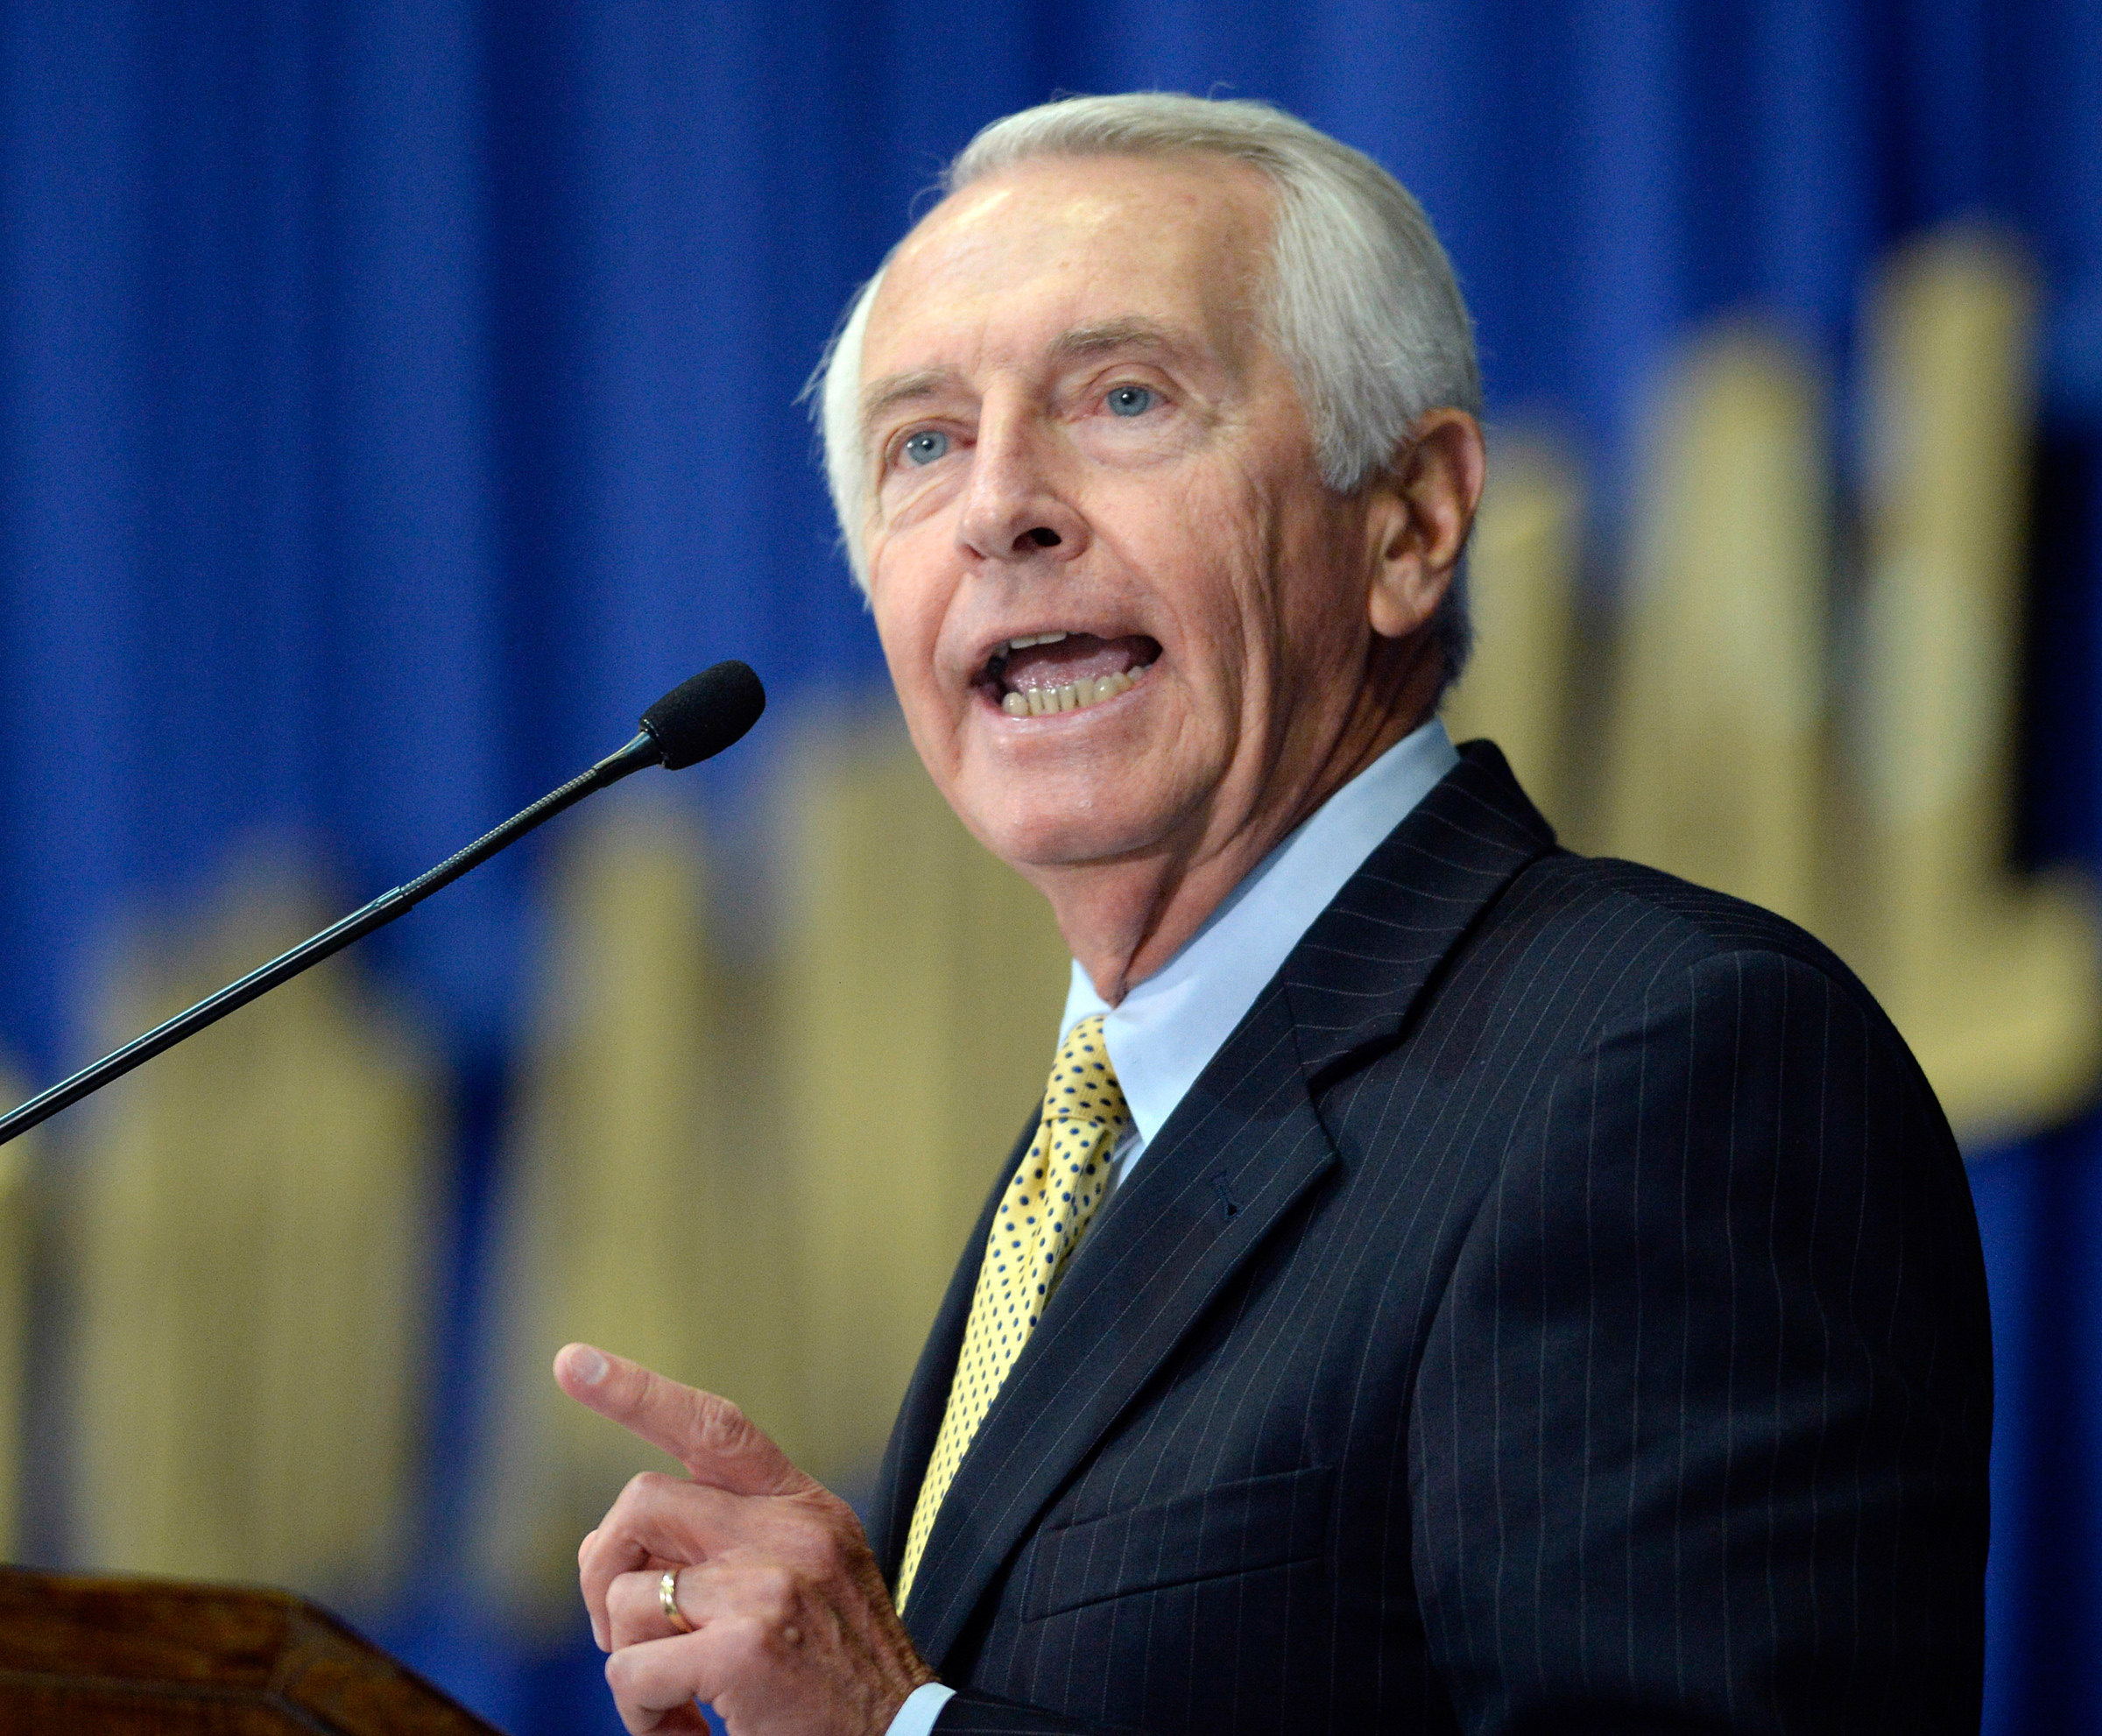 Kentucky Gov. Steve Beshear addresses the audience at the 50th annual Kentucky Country Ham Breakfast in Louisville, Ky., on July 19, 2015